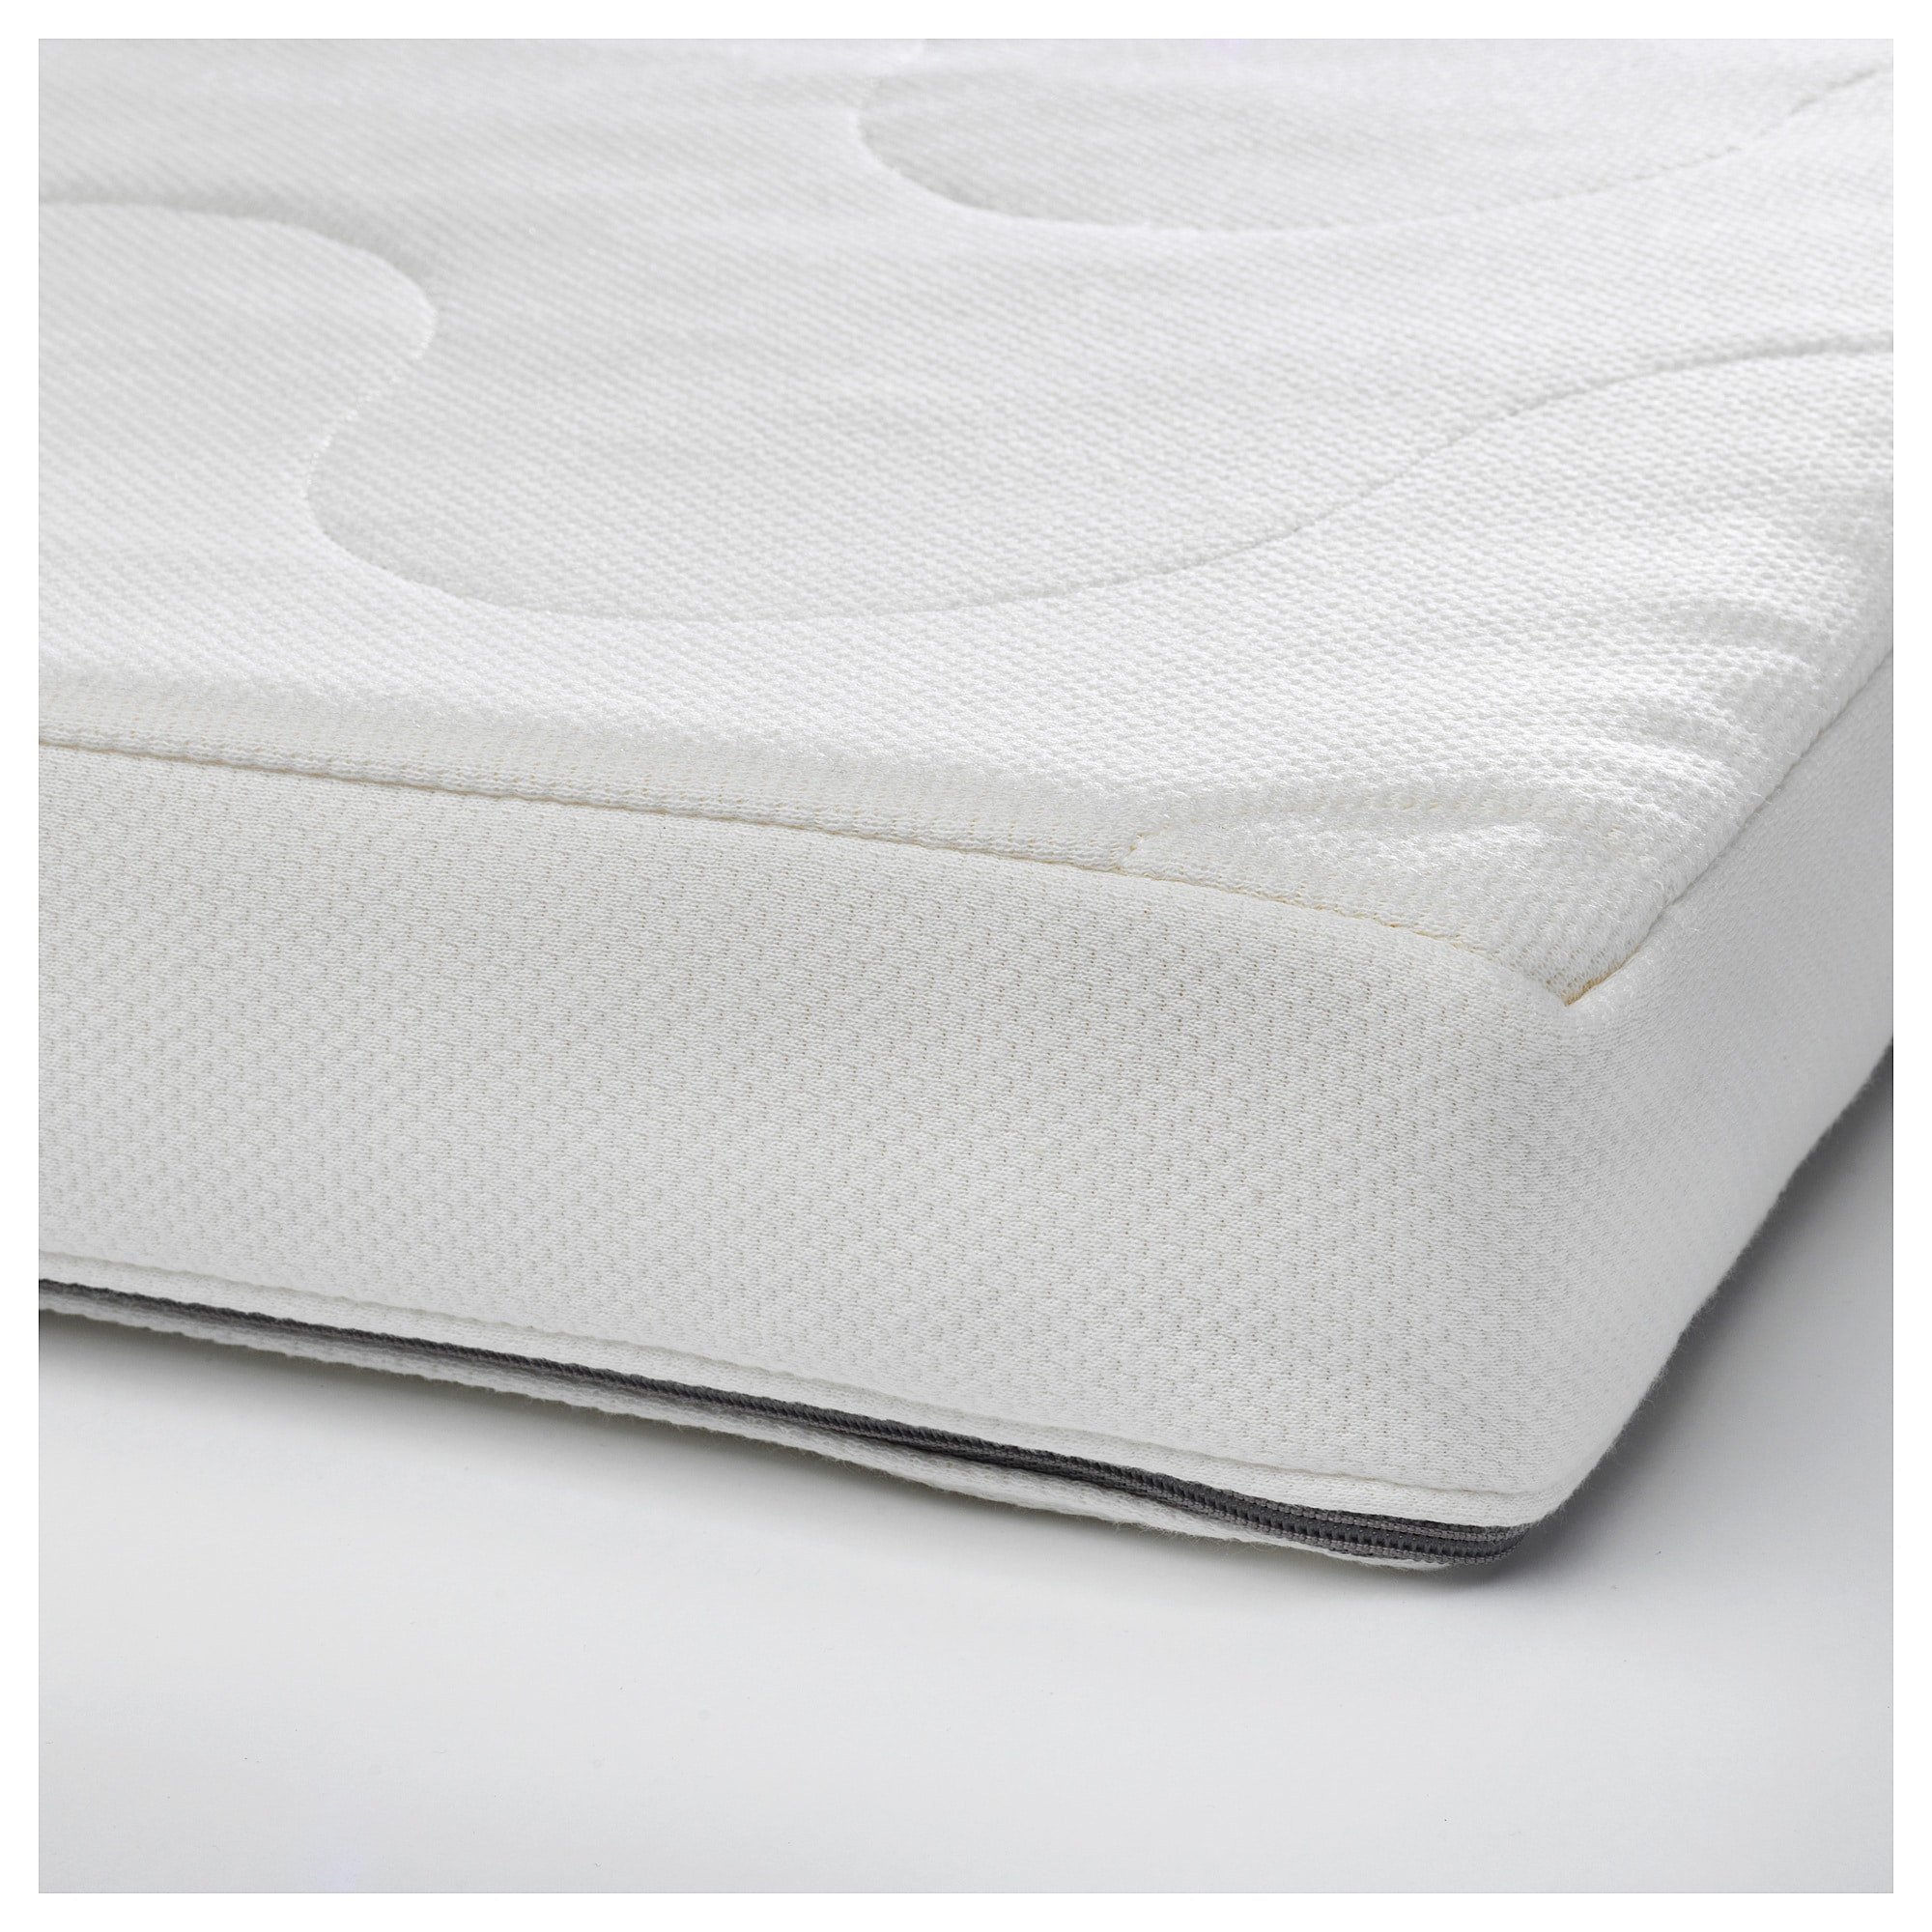 Very Helpful Crib Mattress Pad KRUMMELUR Foam mattress for crib